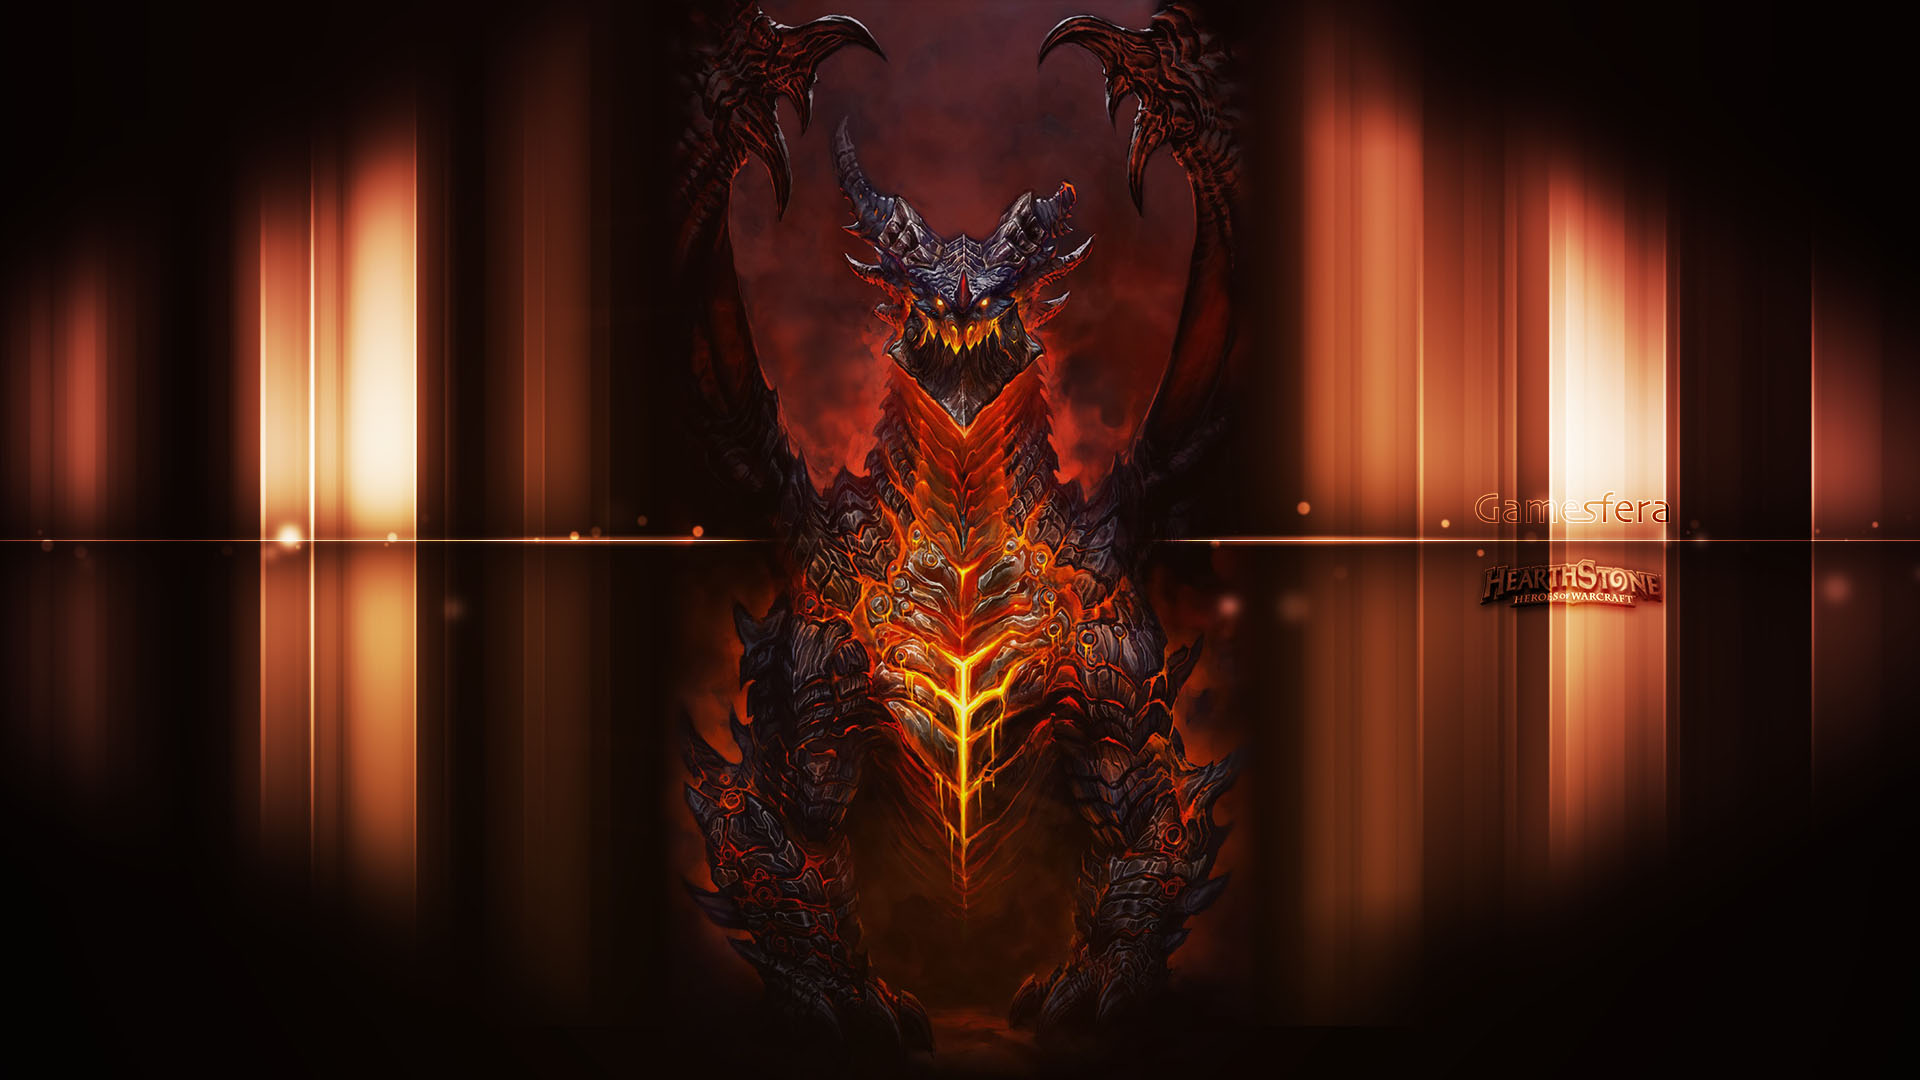 Seguir leyendo Nuevo Wallpaper de Hearthstone: Alamuerte (Deathwing ...: gamesfera.com/category/wallpapers